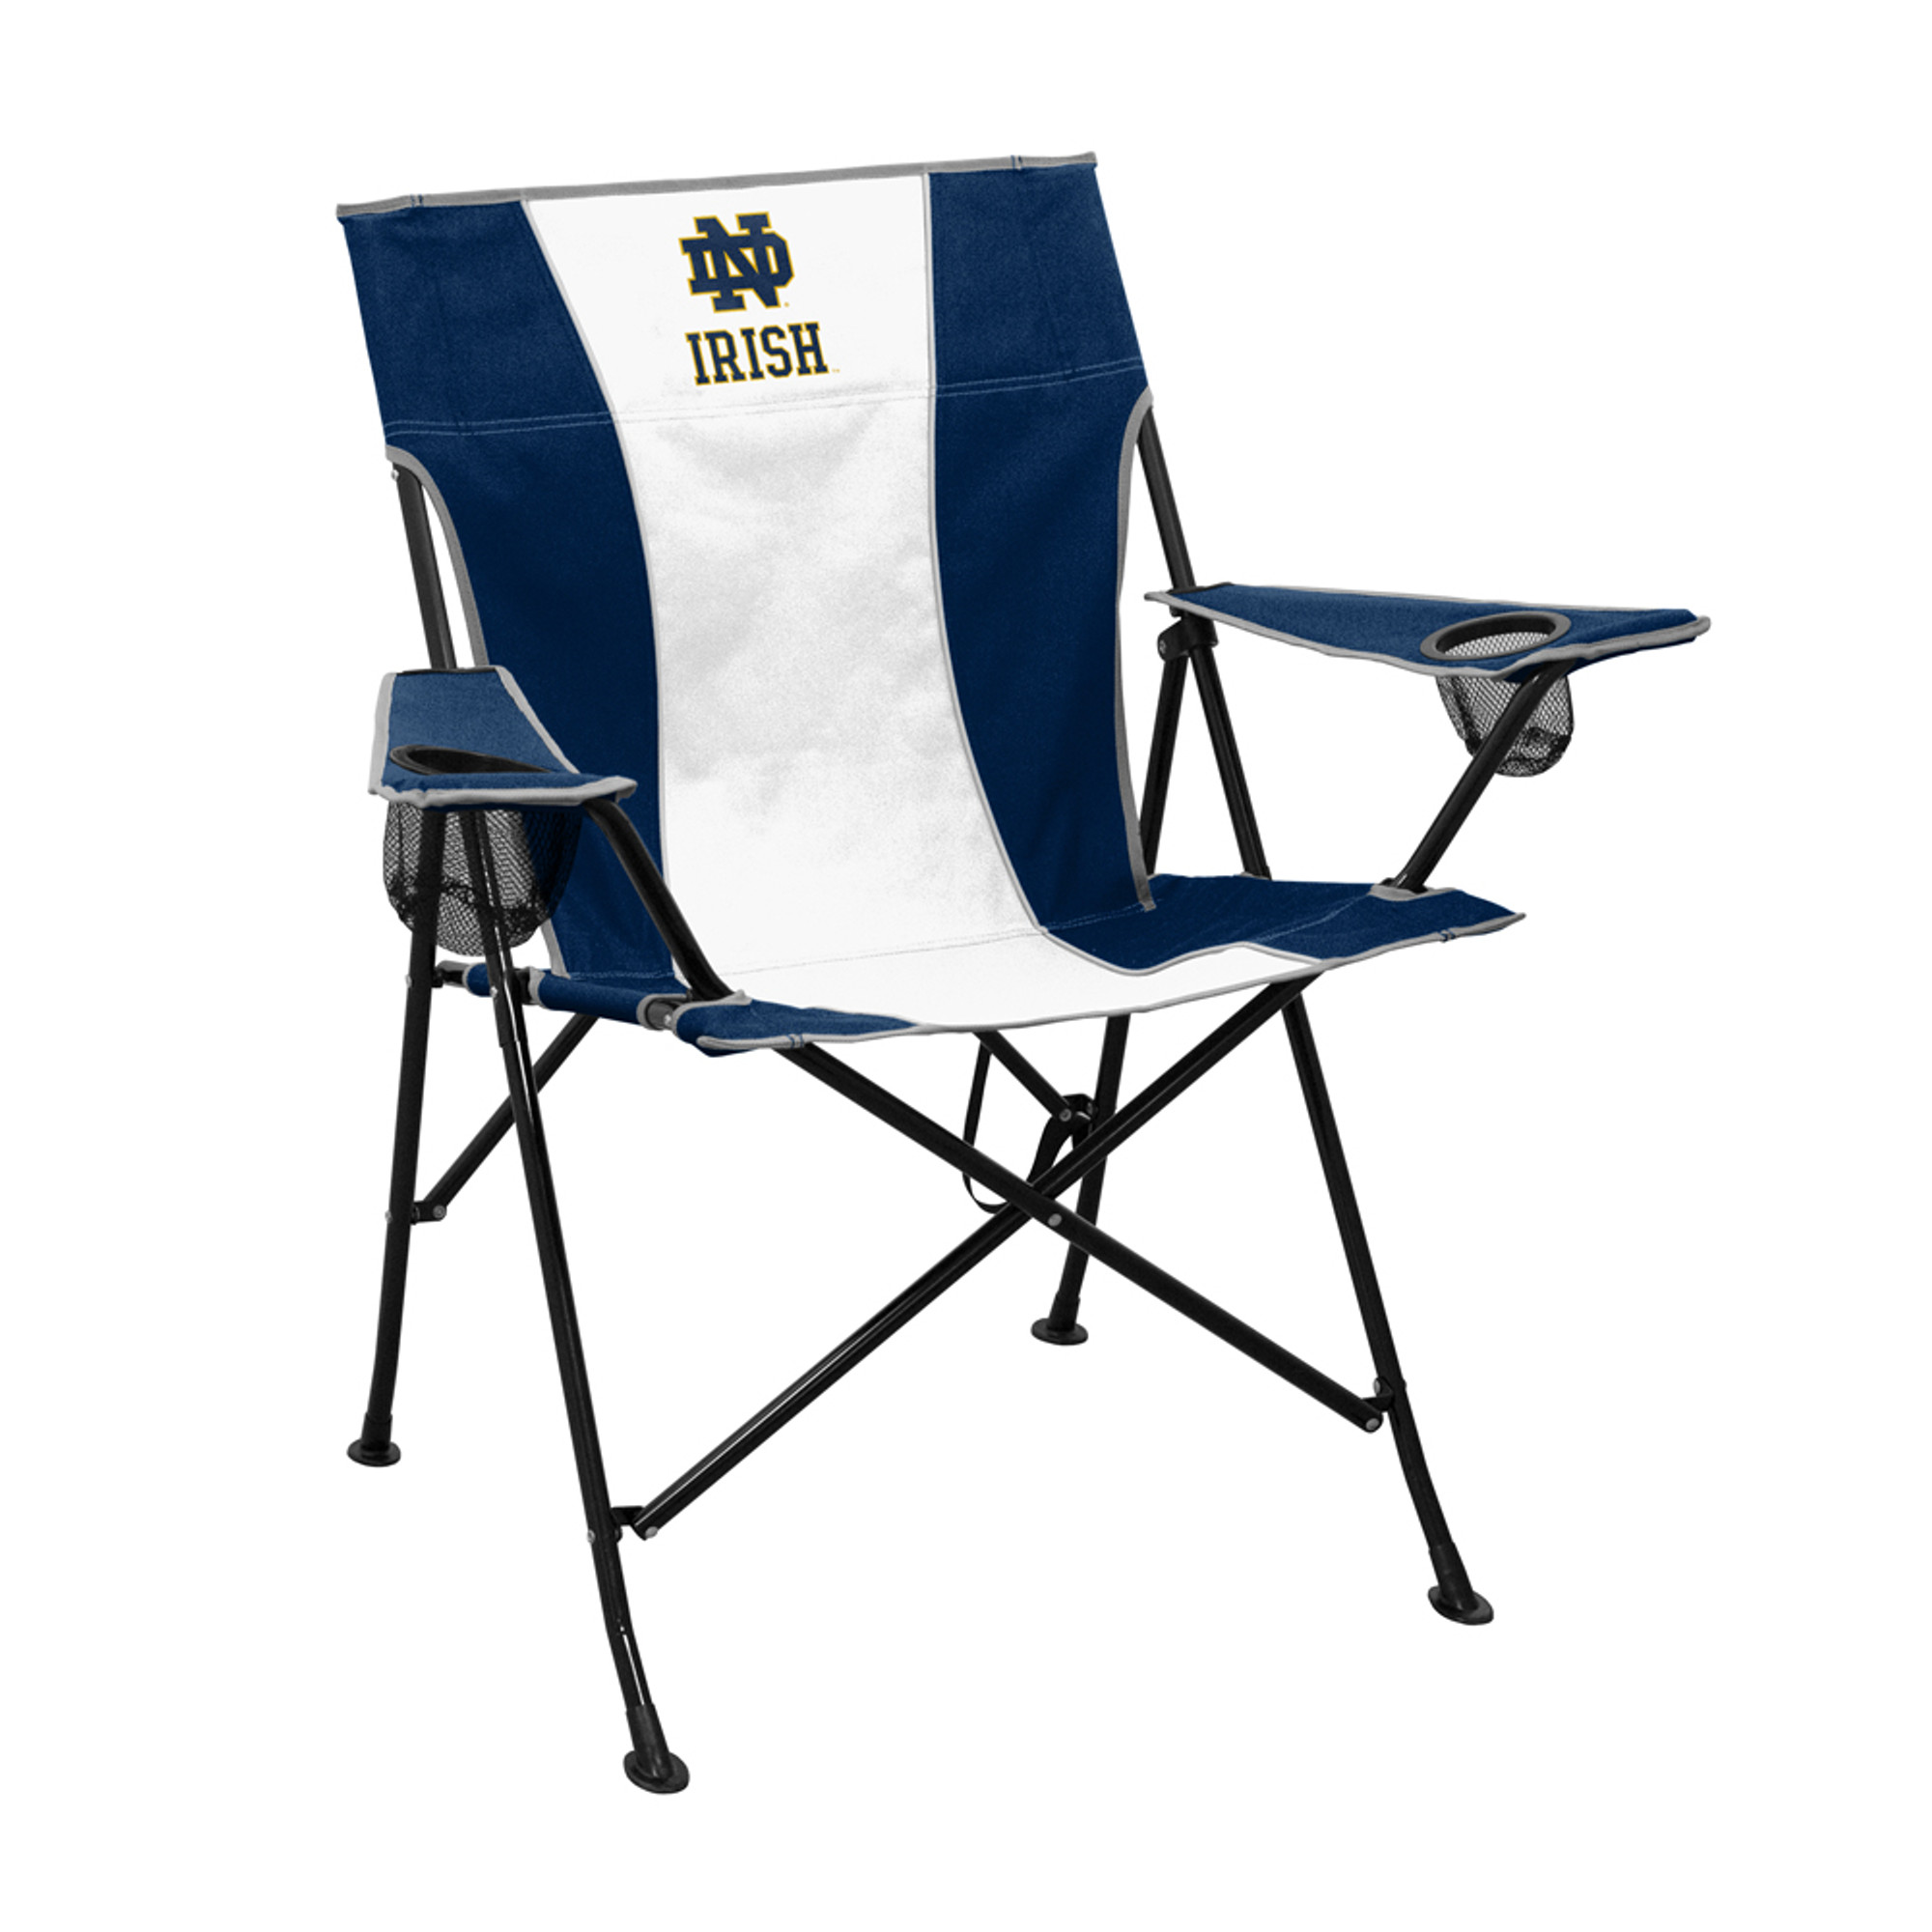 notre dame chair small chaise lounge chairs for bedroom uk fighting irish navy white pregame 190 10p 1 29857 1538690229 jpg c 2